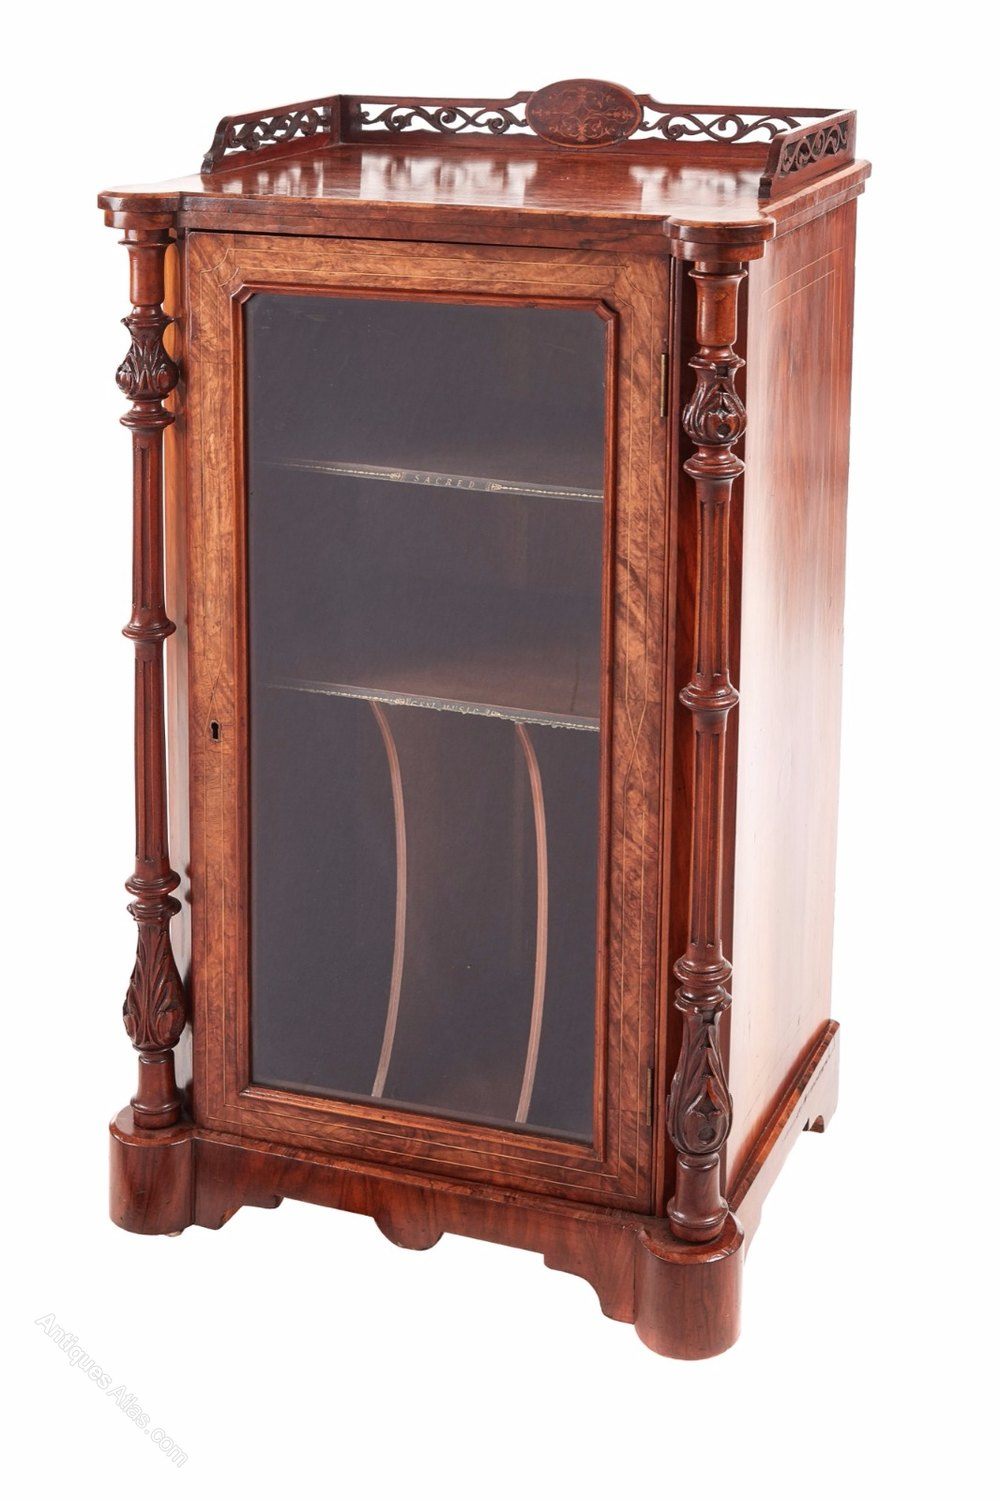 ... Music Cabinet Chest Of Drawers Prior And Willis Antiques · Good Quality  Victorian Inlaid - Antique Music Cabinets - Antiques Atlas